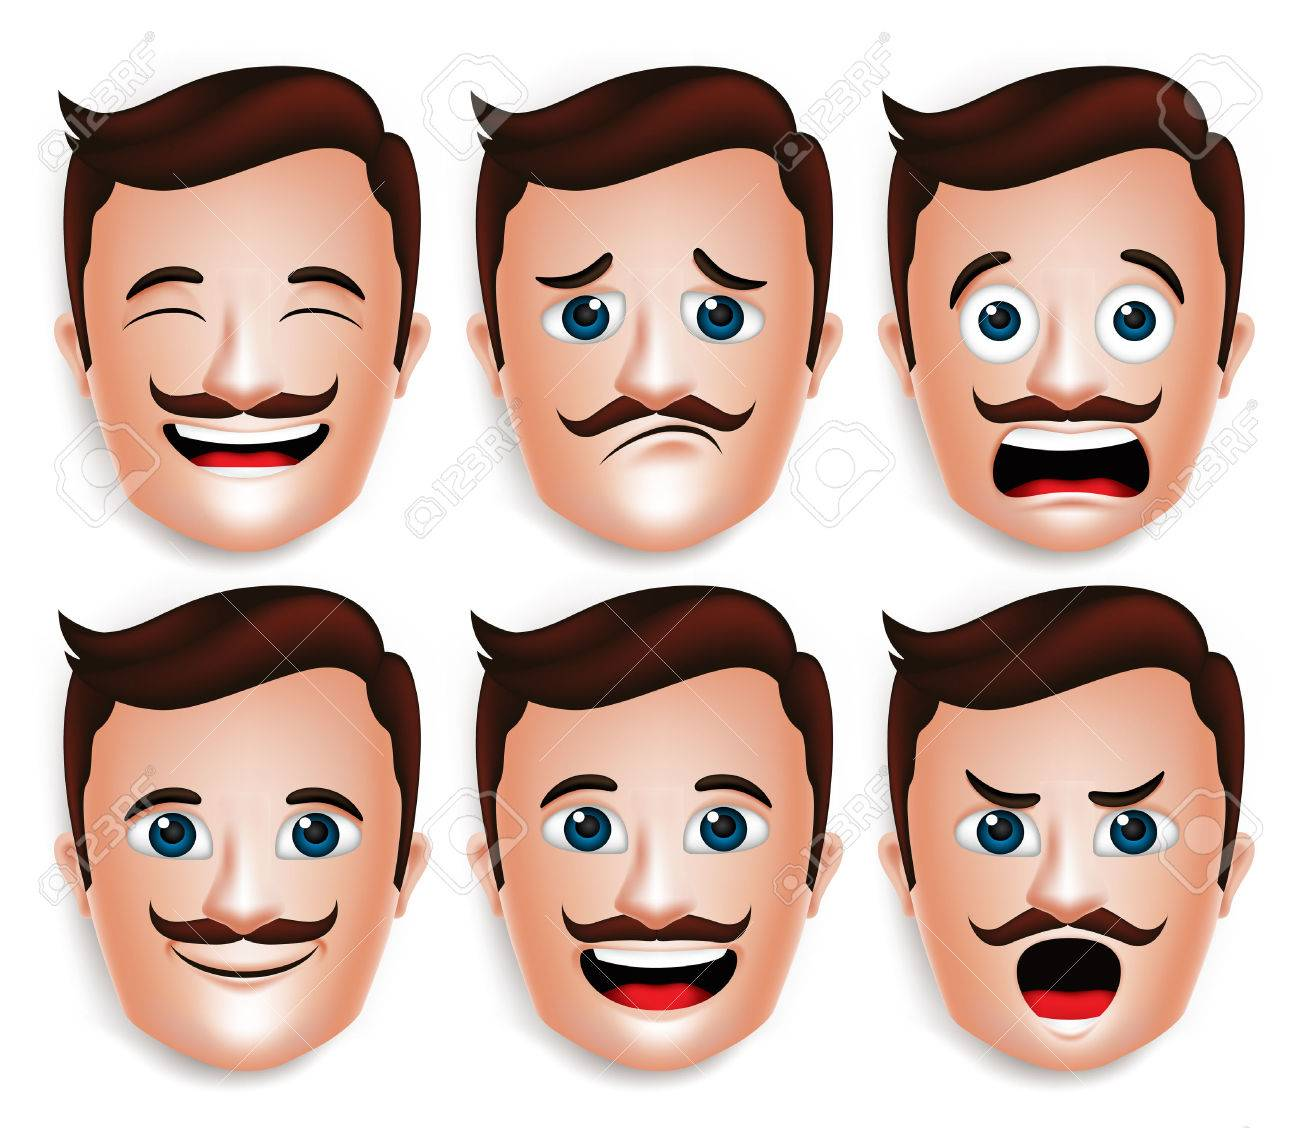 Set of 3D Realistic Handsome Man Head with Different Facial Expressions With Mustache for Avatar. Isolated in White Background Editable Vector Illustration - 43875182